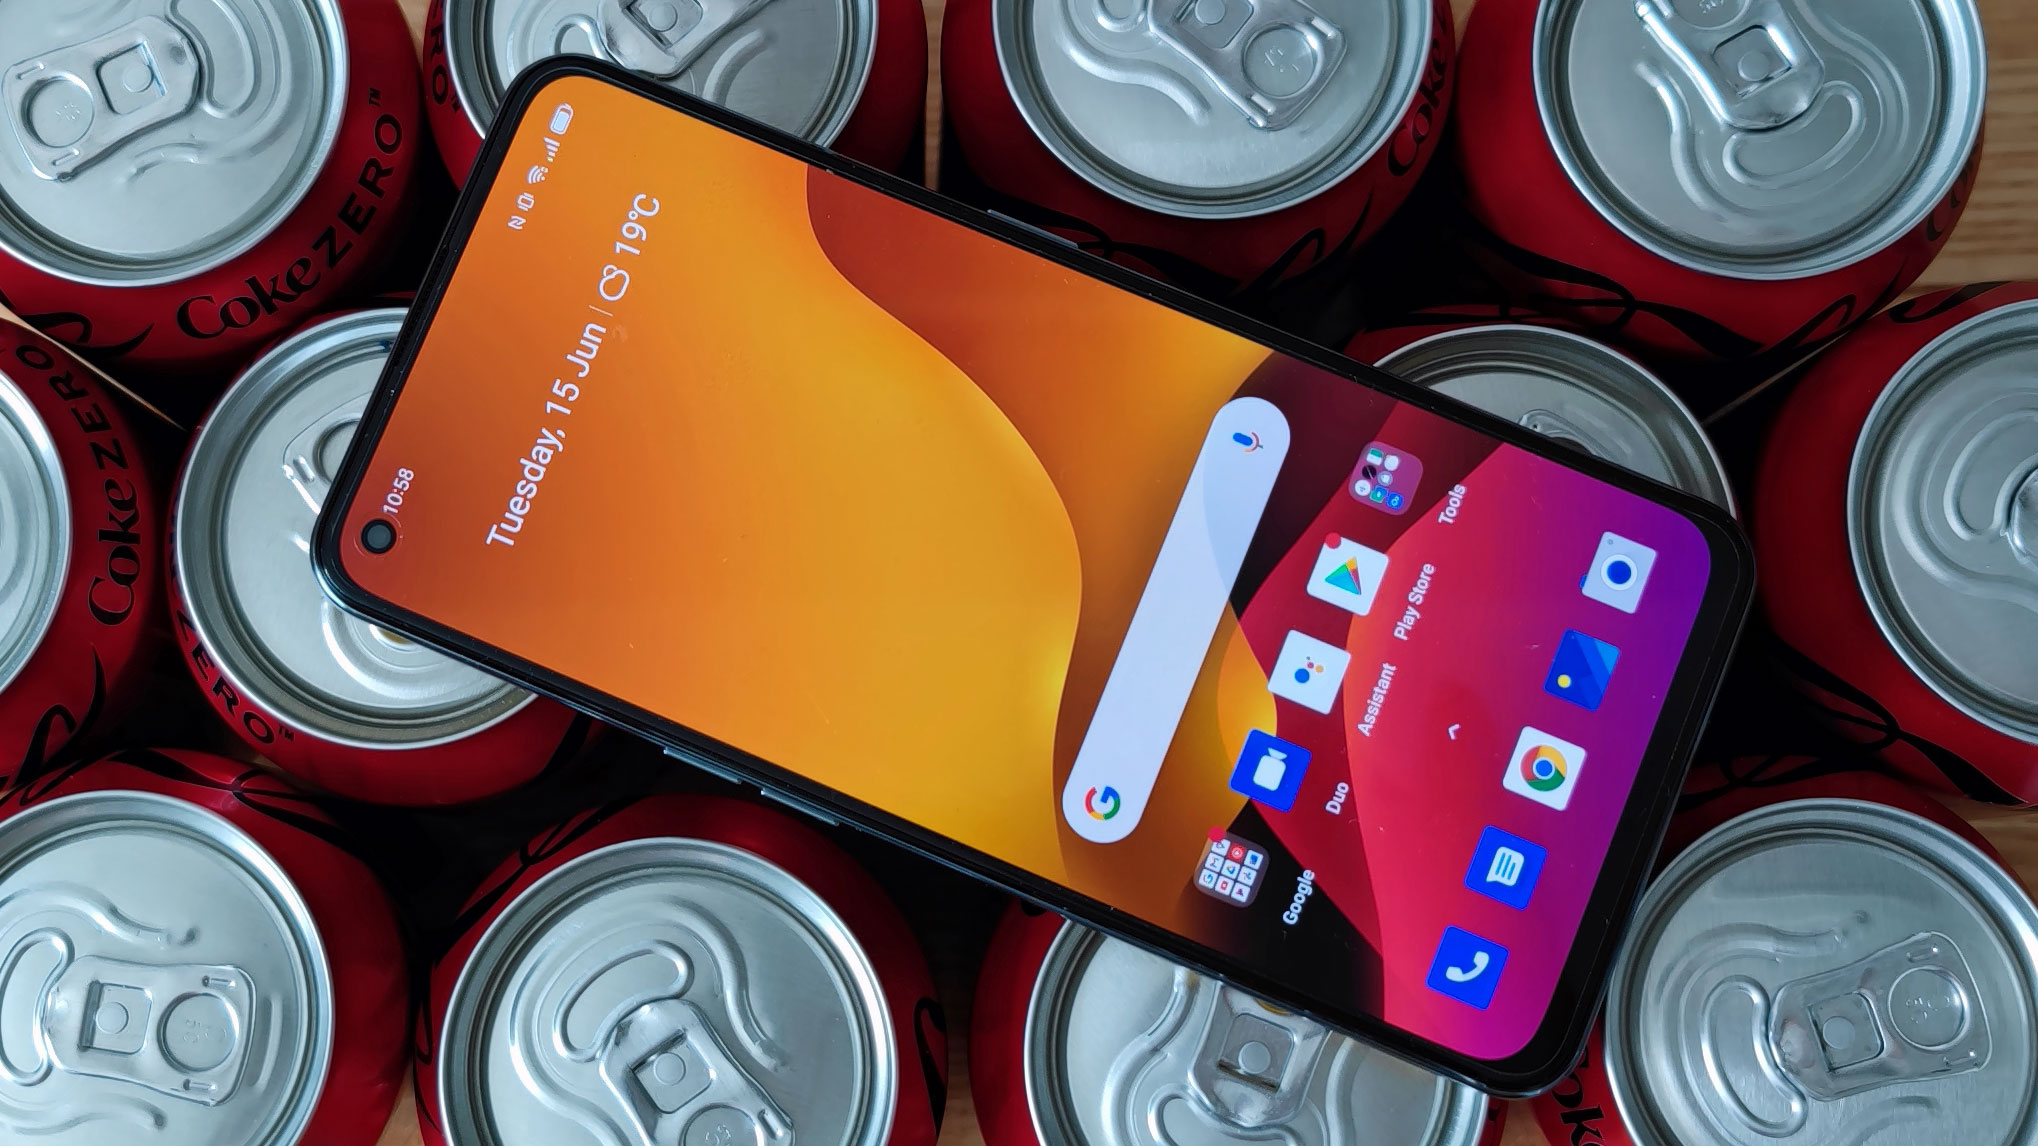 A Realme GT sat on top of some canned drinks